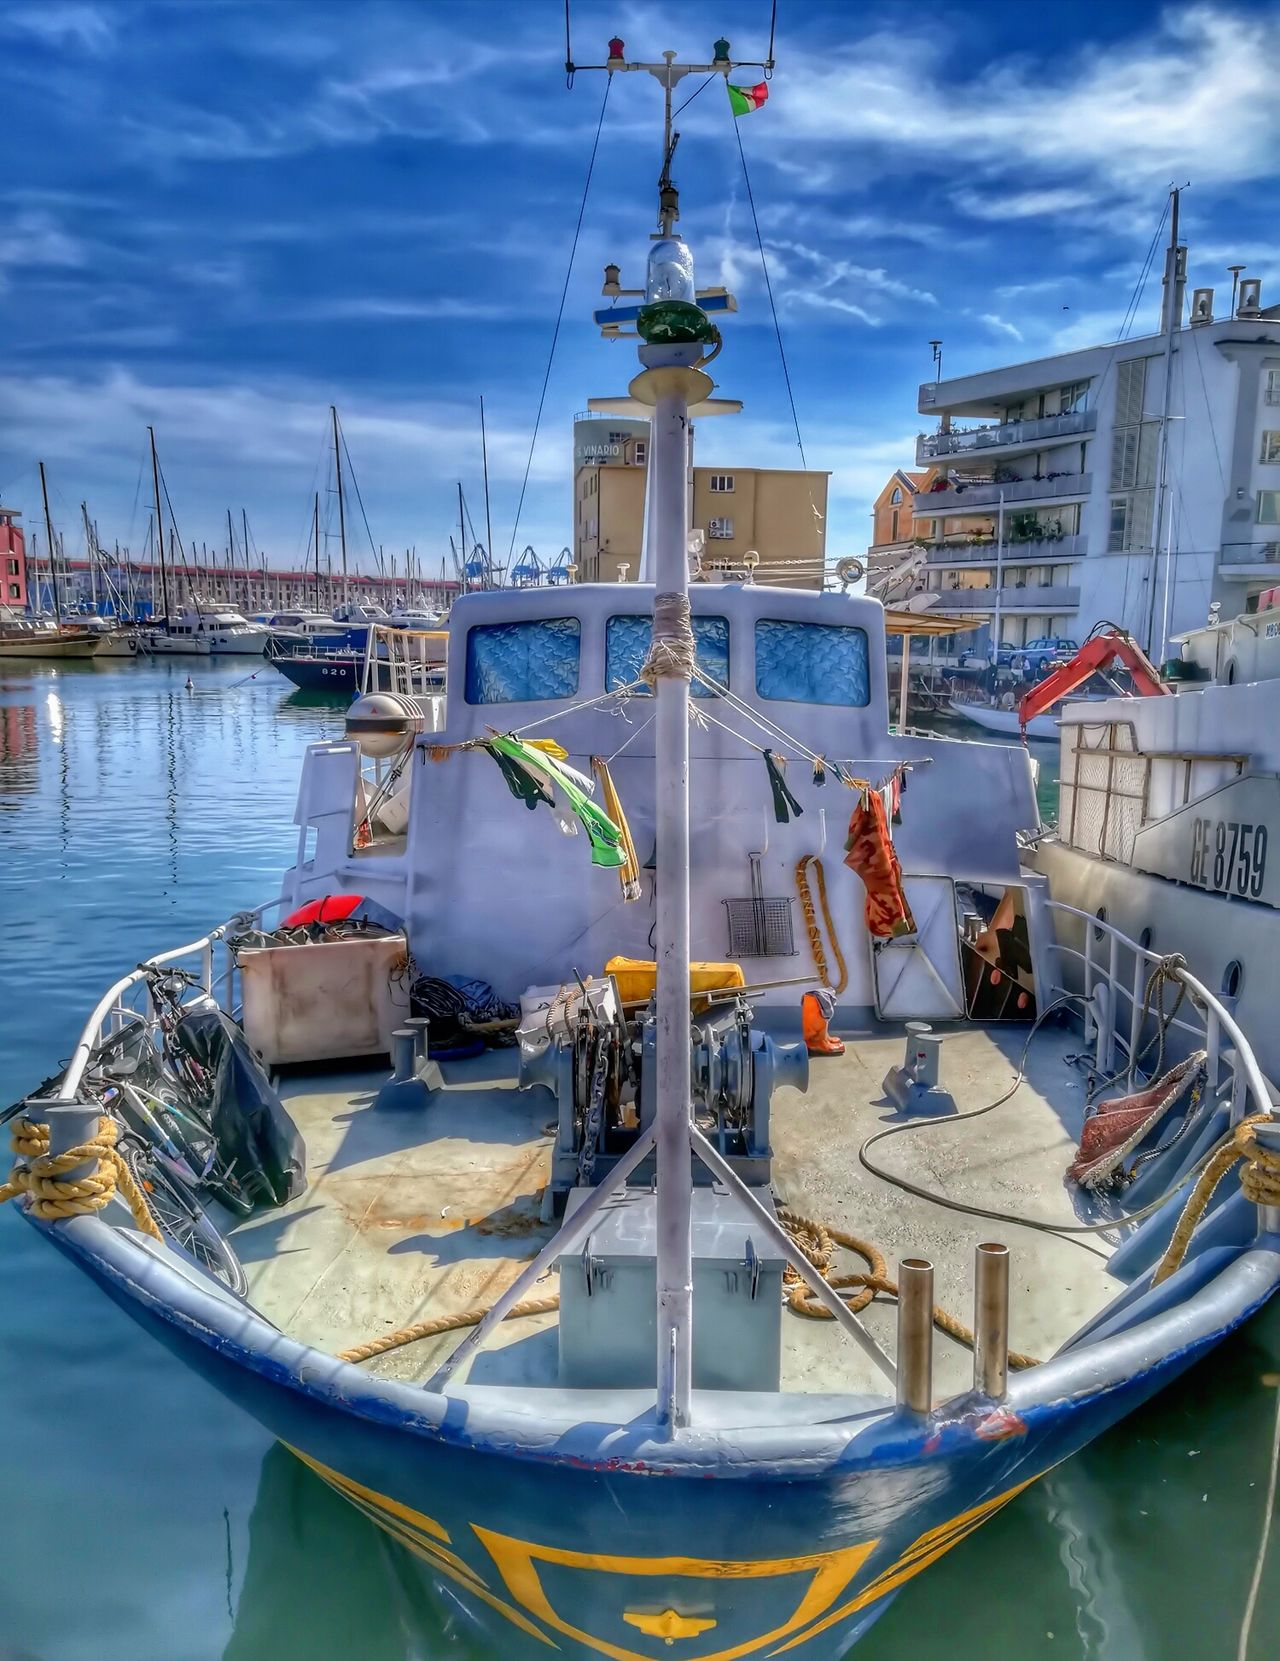 Nautical Vessel Water Moored Transportation Harbor Outdoors Reflection No People Mode Of Transport Sky Travel Destinations Day City Gondola - Traditional Boat Sailing Ship Hdr_Collection Hdr Edit Hdrphotography